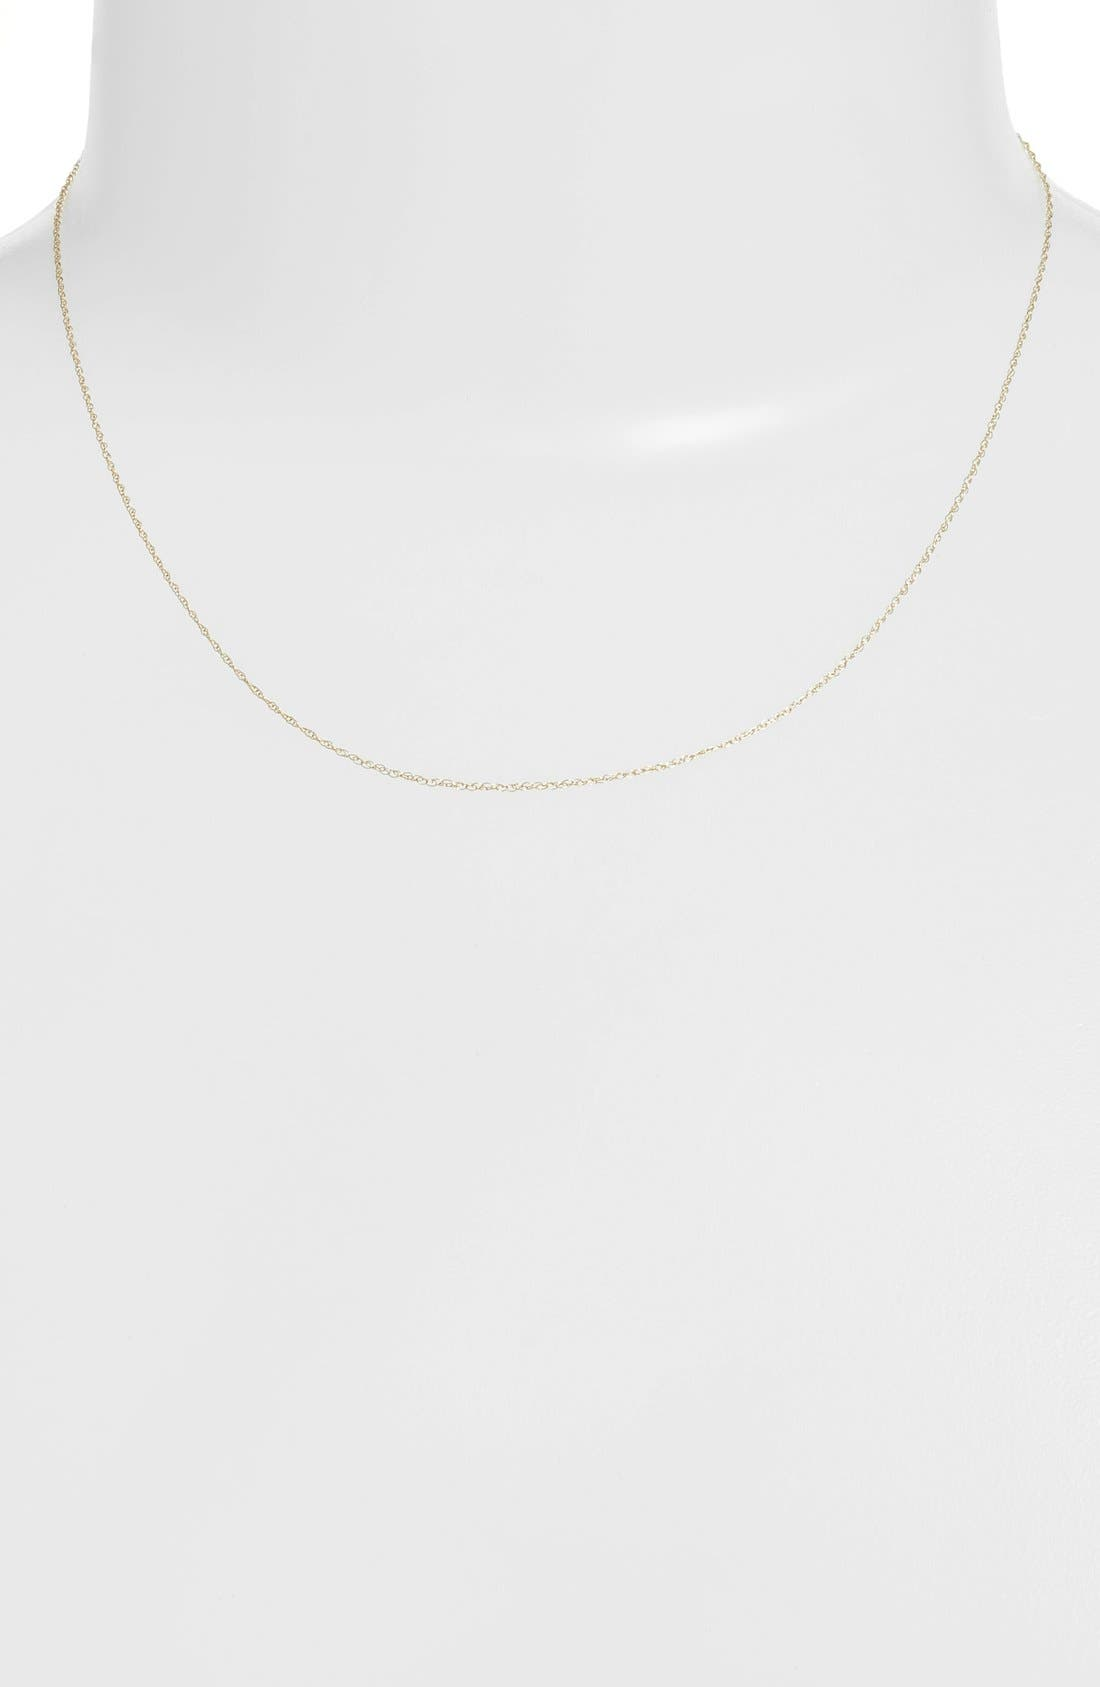 Kardee Kids Cable Chain Necklace,                         Main,                         color, Yellow Gold